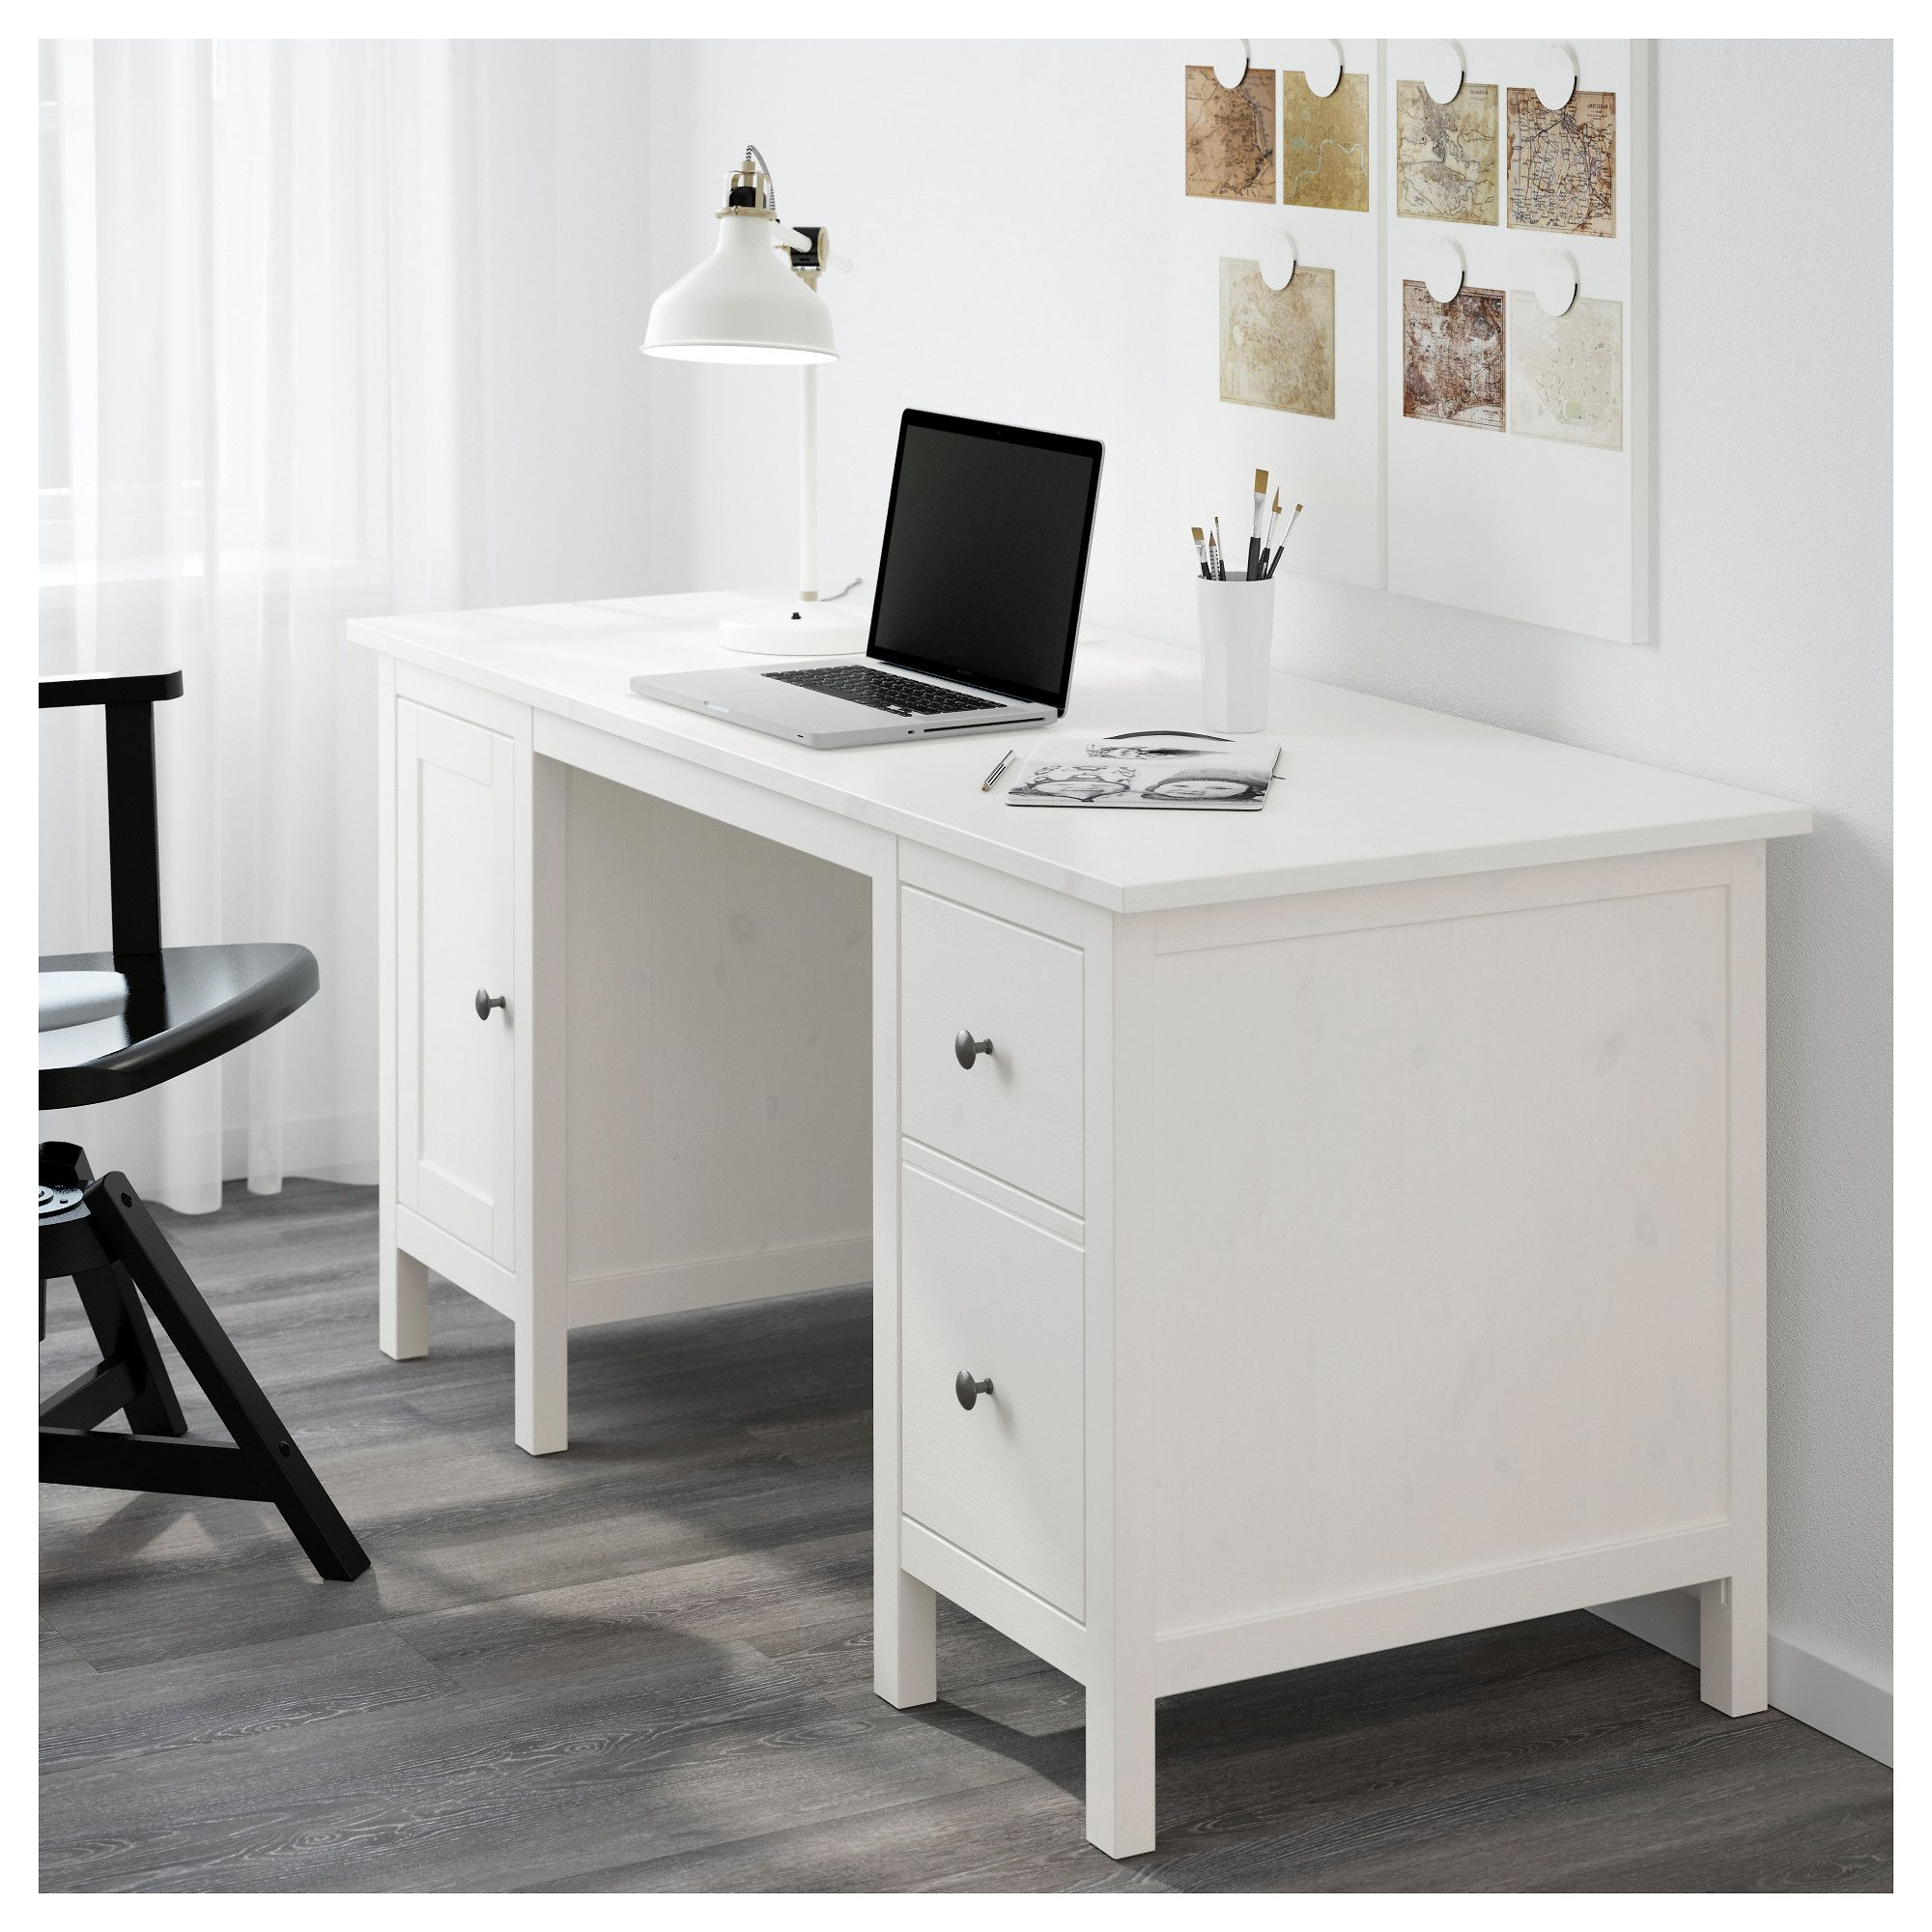 Hemnes White Stain Desk 155x65 Cm Ikea Hemnes Ikea Hemnes Desk Home Office Furniture